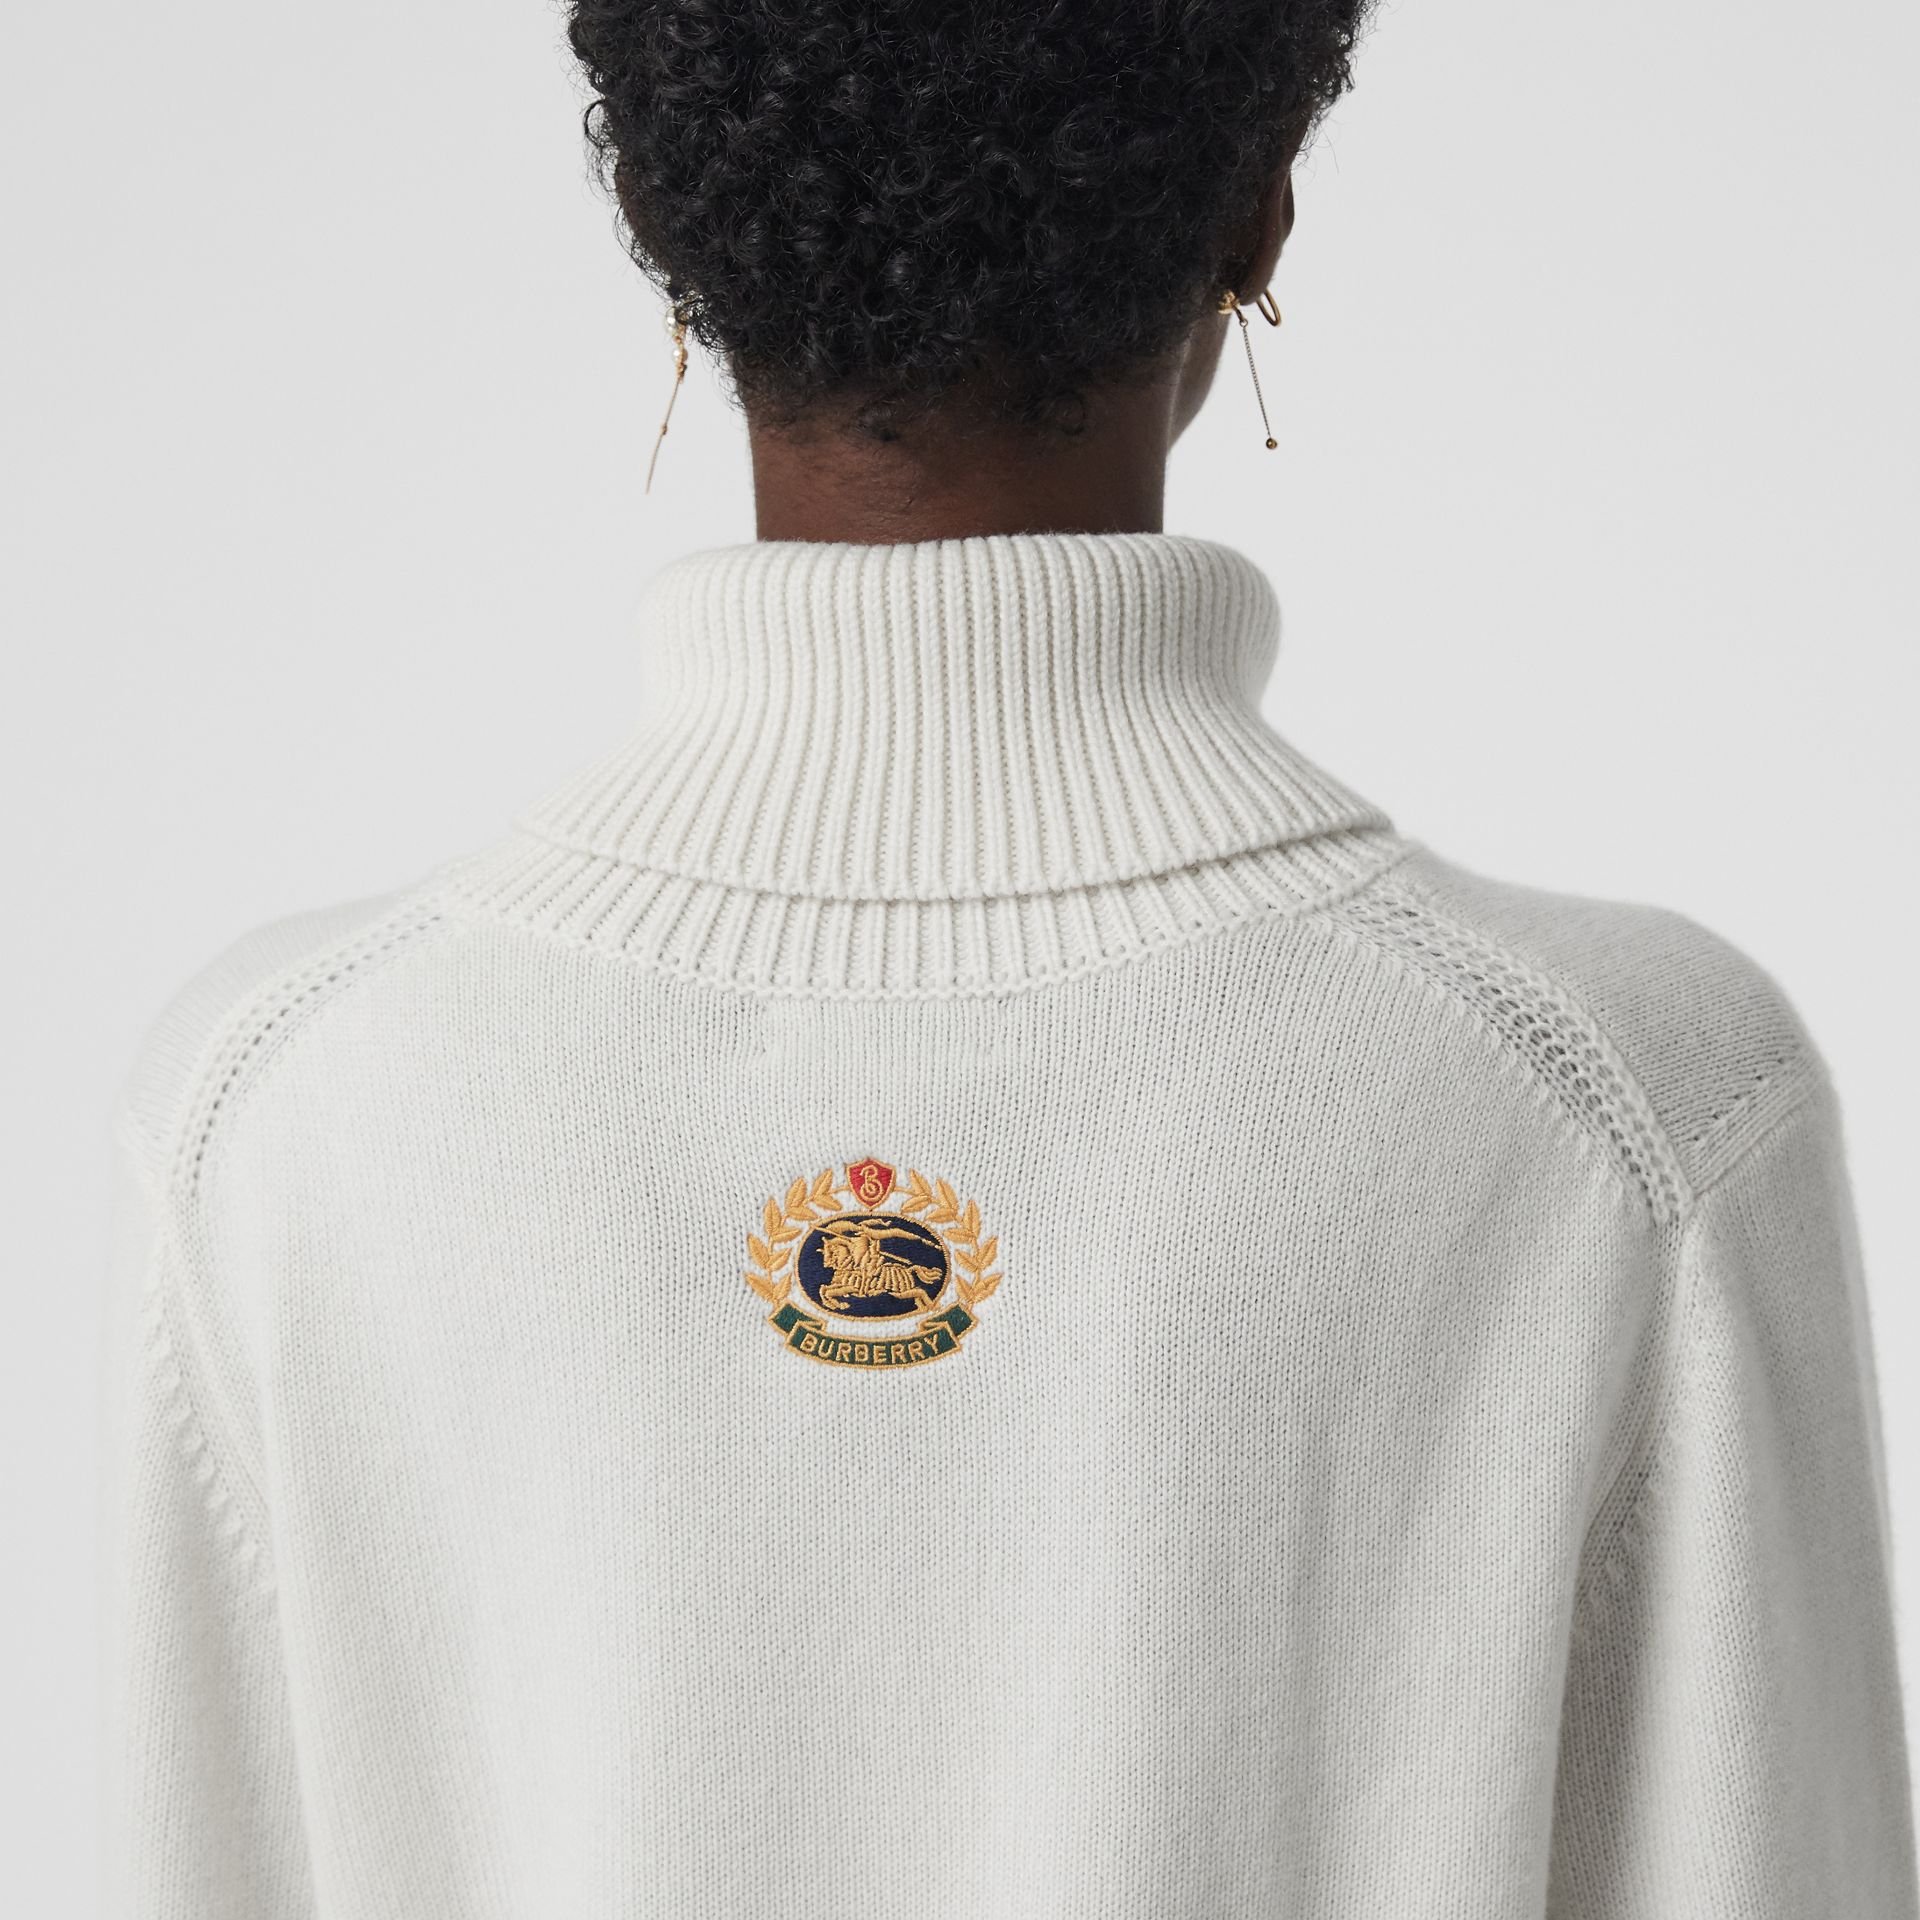 Embroidered Crest Cashmere Roll-neck Sweater in White - Women | Burberry Australia - gallery image 1